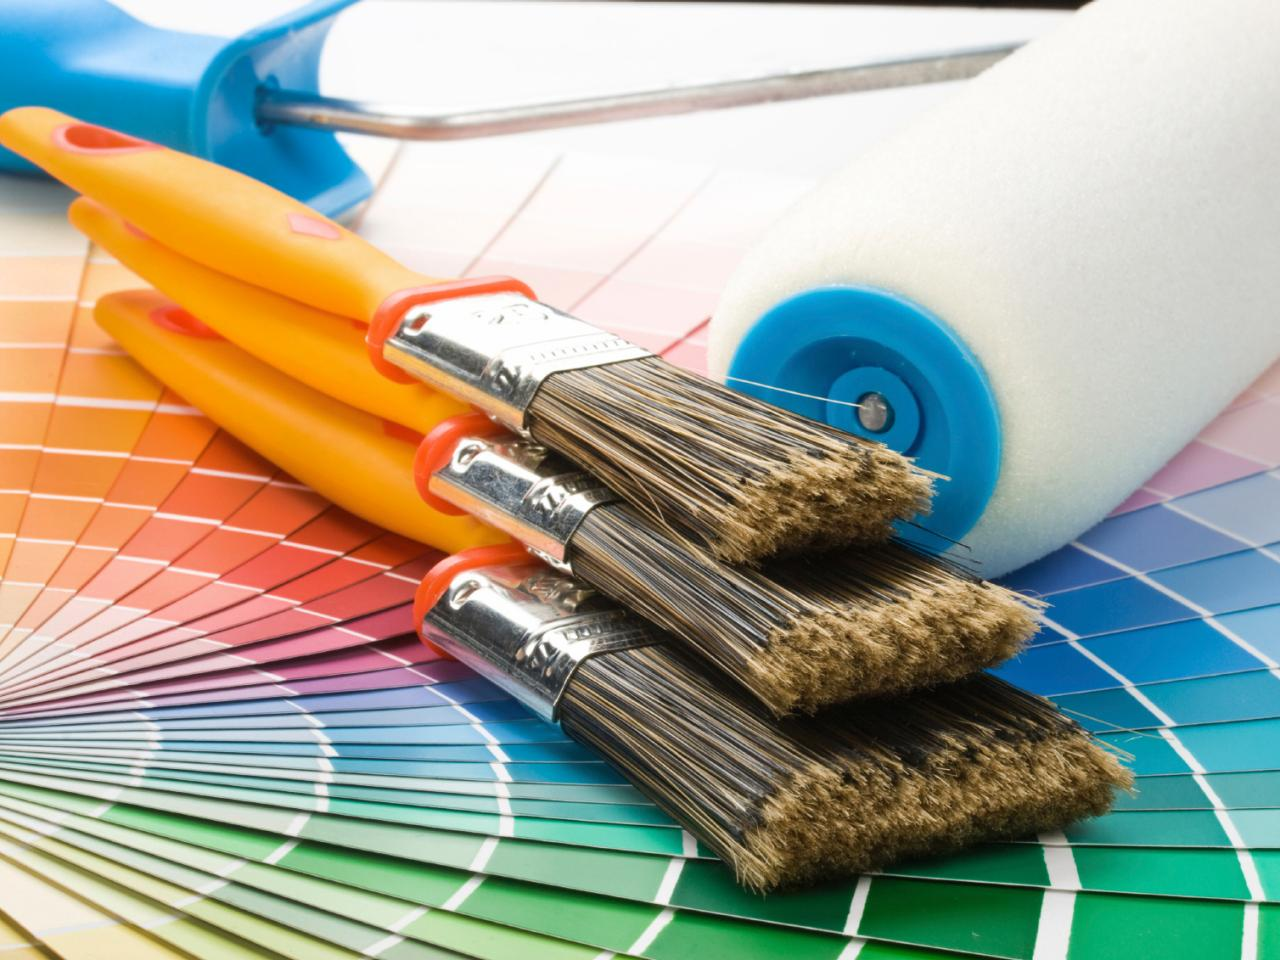 iStock-7253329_paint-samples-paint-brushes-paint-roller_s4x3.jpg.rend_.hgtvcom.1280.960